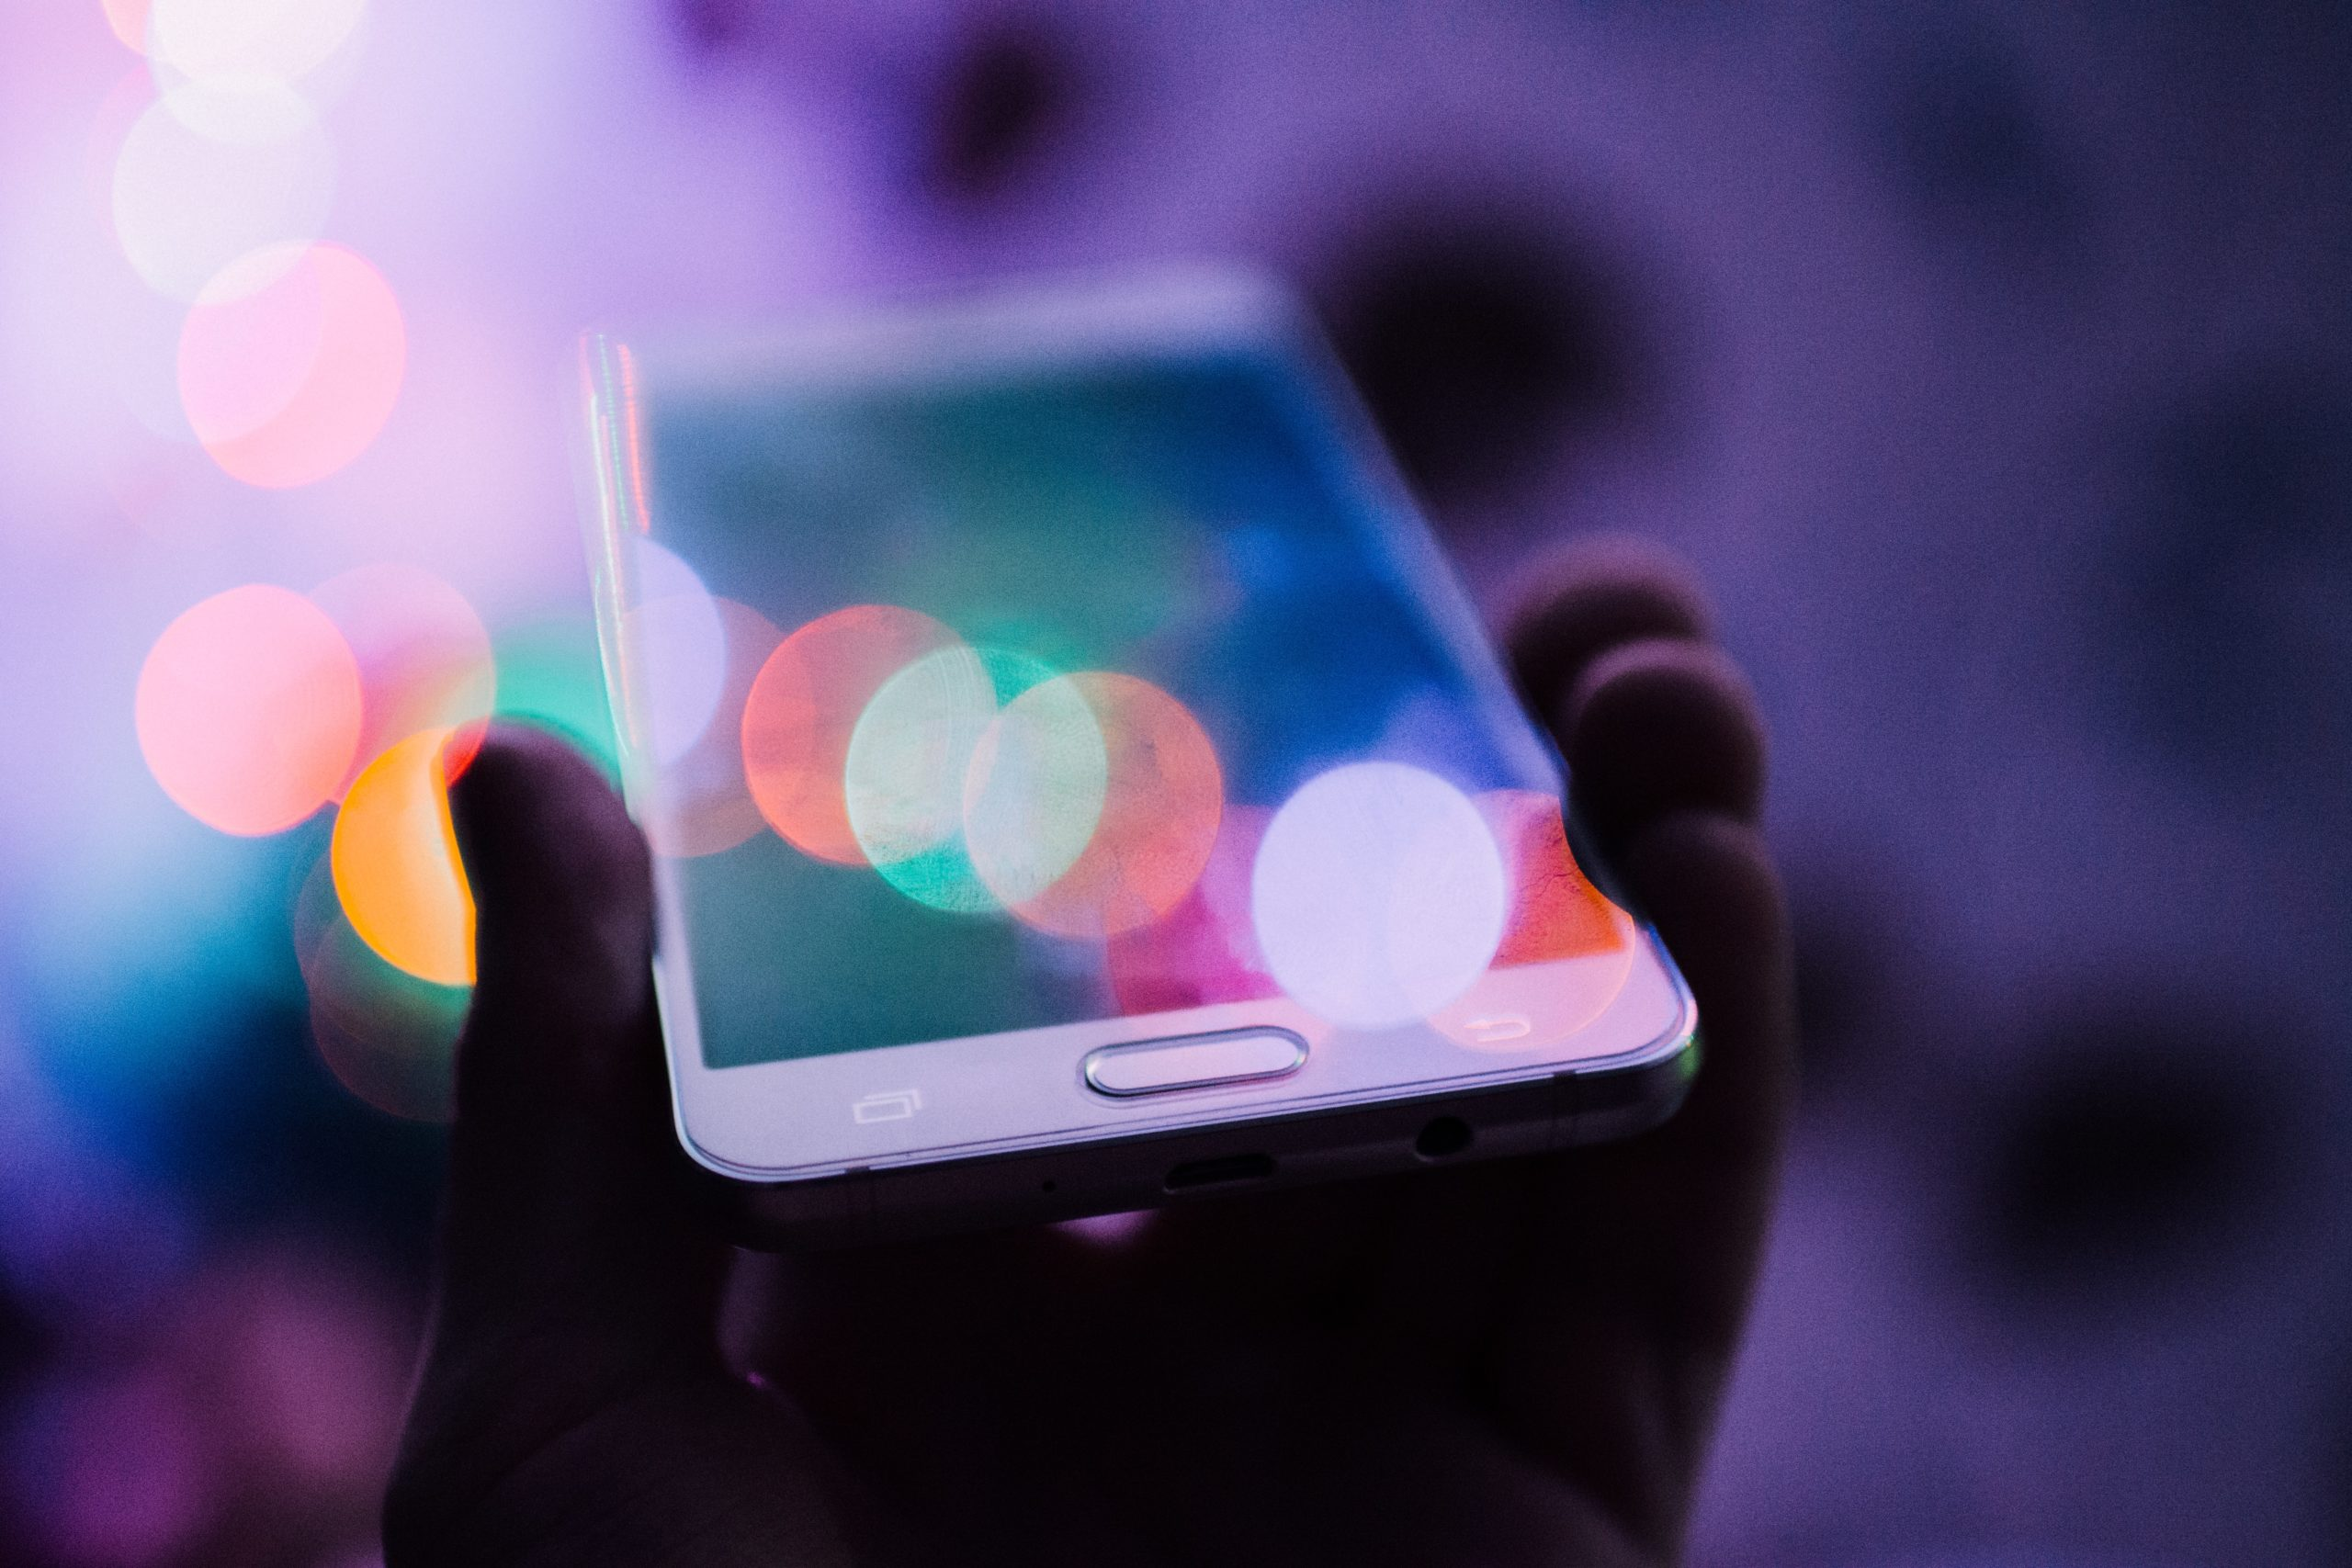 mobile phone in colourful lights